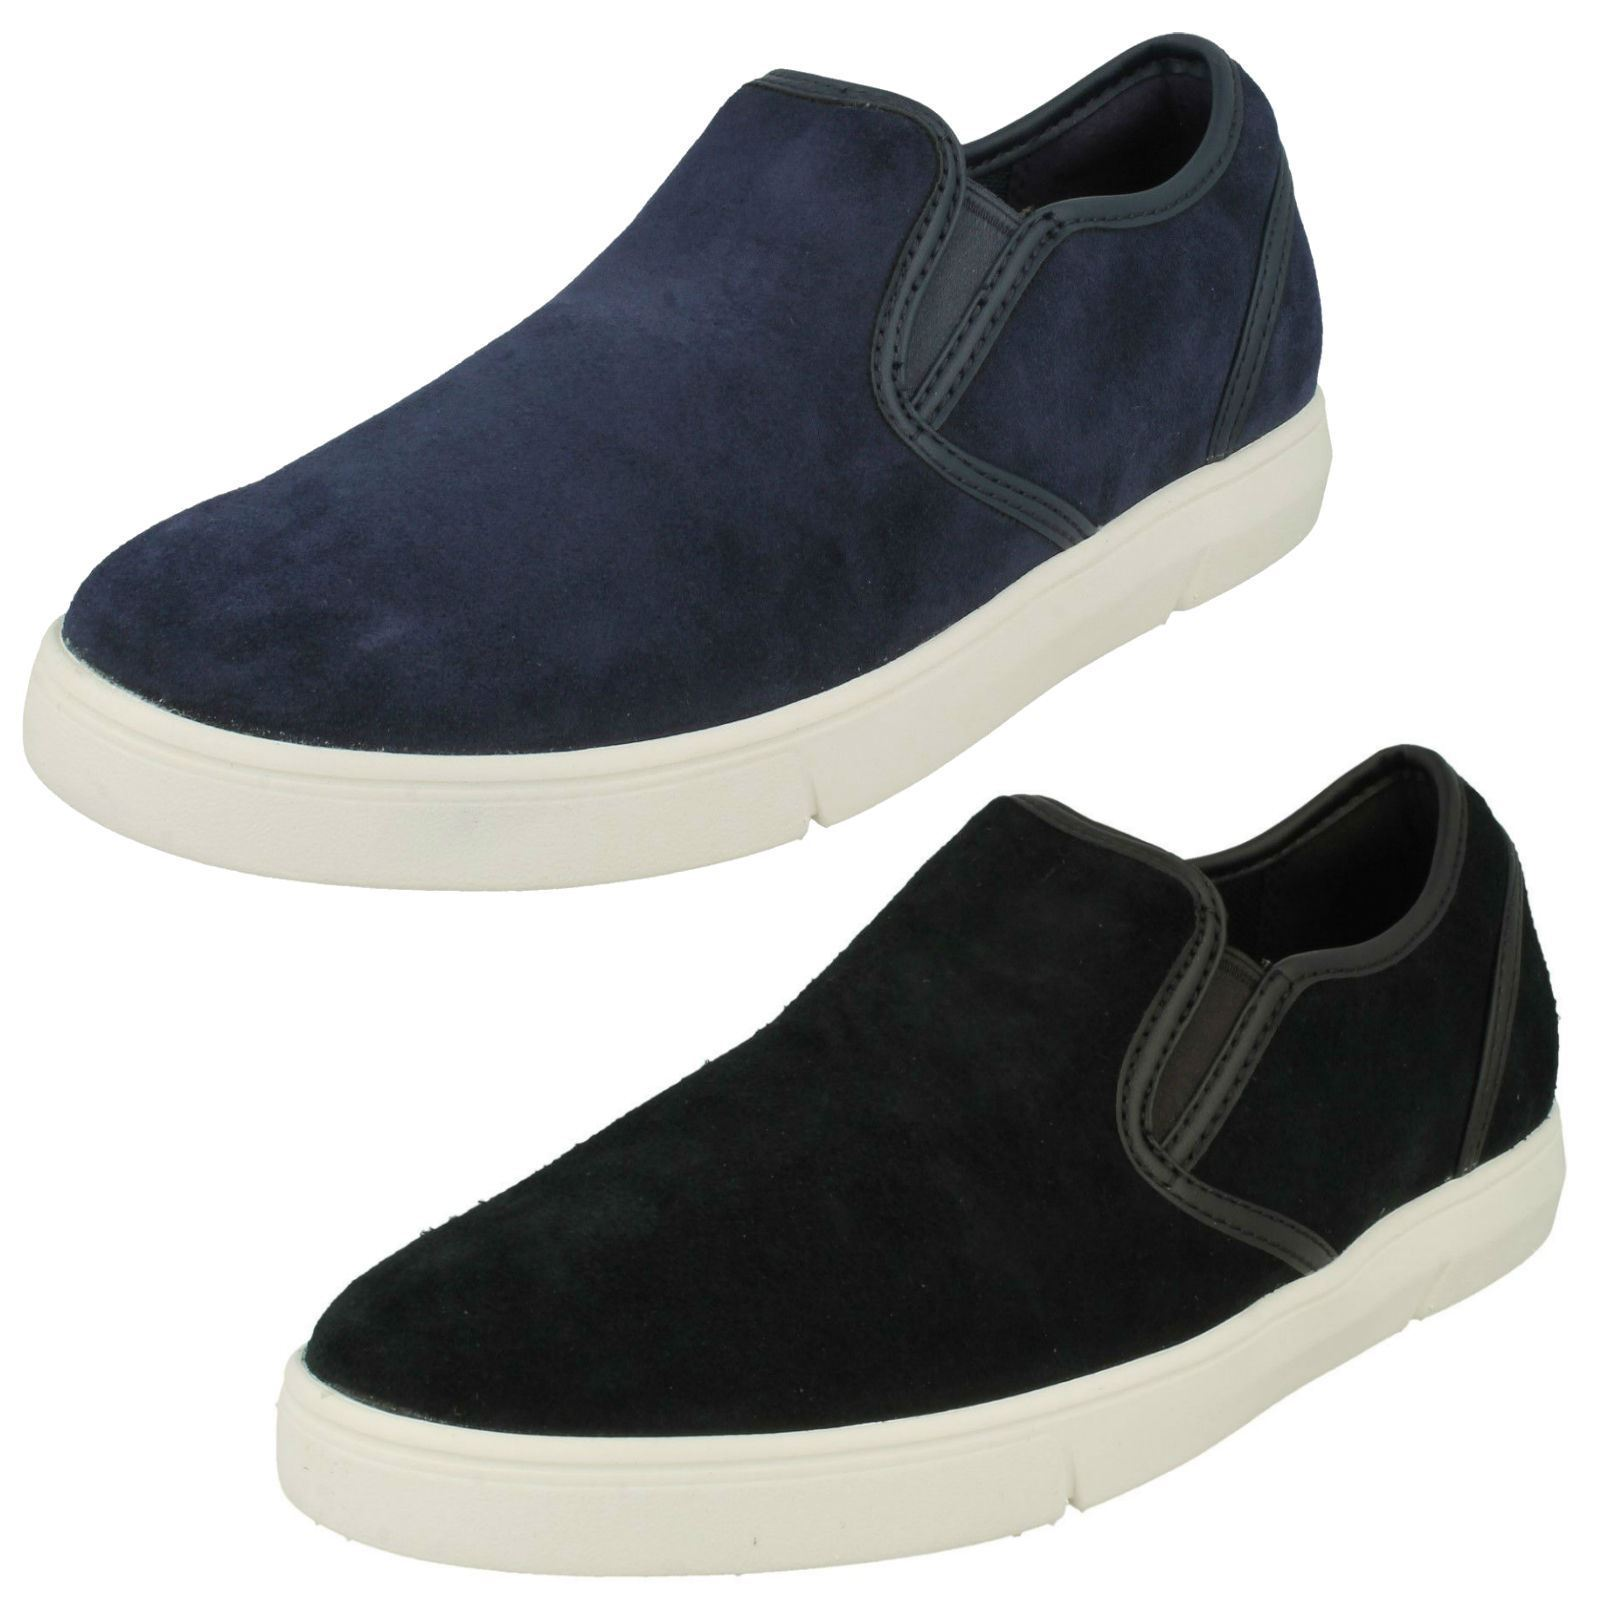 Mens Clarks Casual Slip On shoes 'Landry Step'